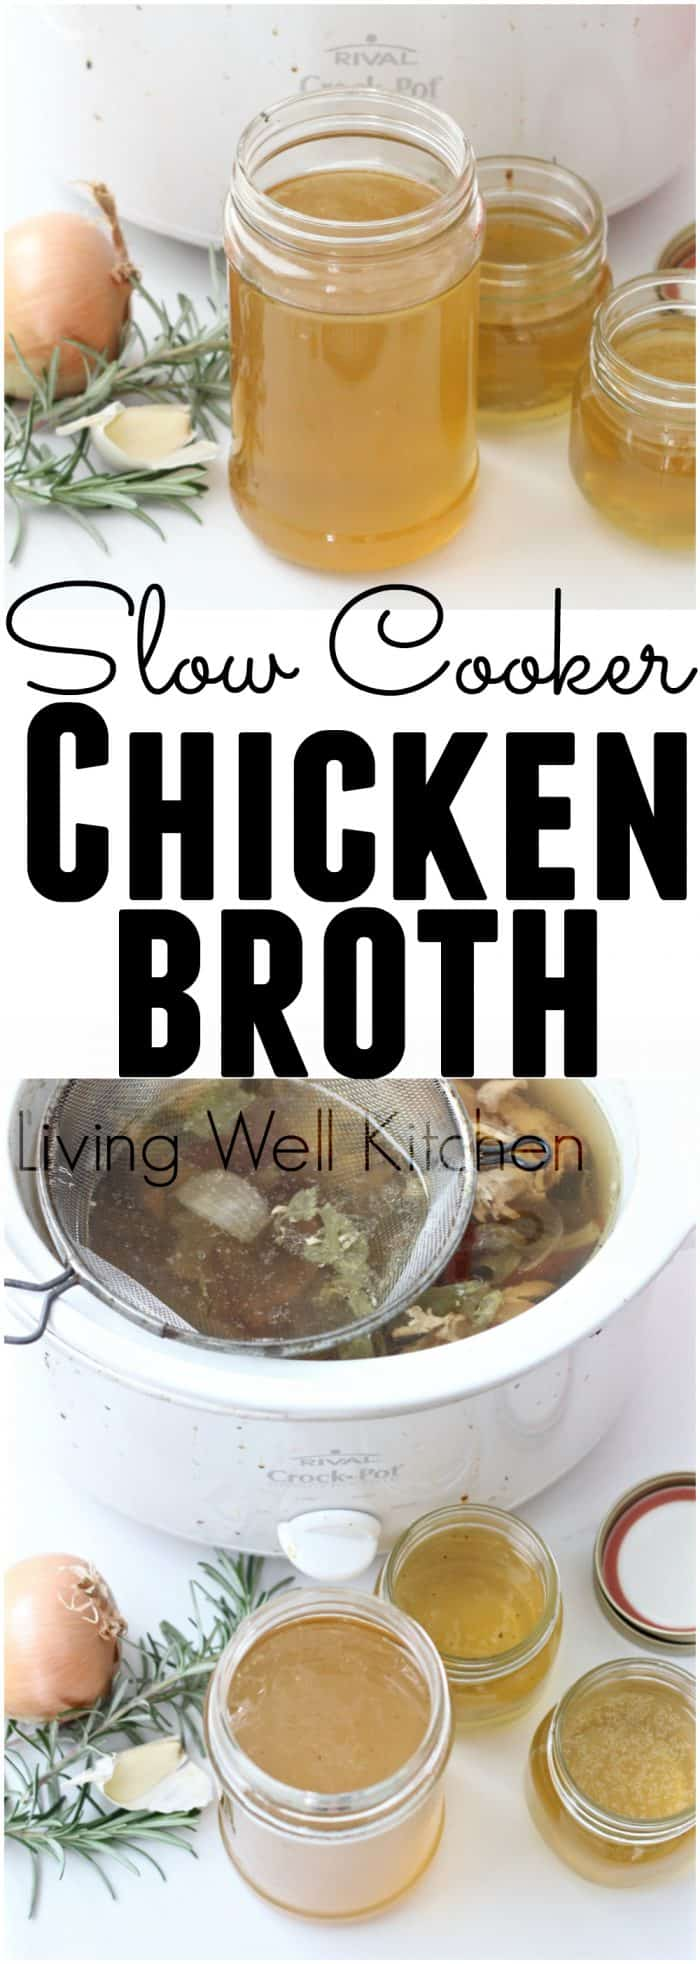 Making homemade chicken broth is easy when you use your slow cooker. Slow Cooker Chicken Broth recipe from @memeinge